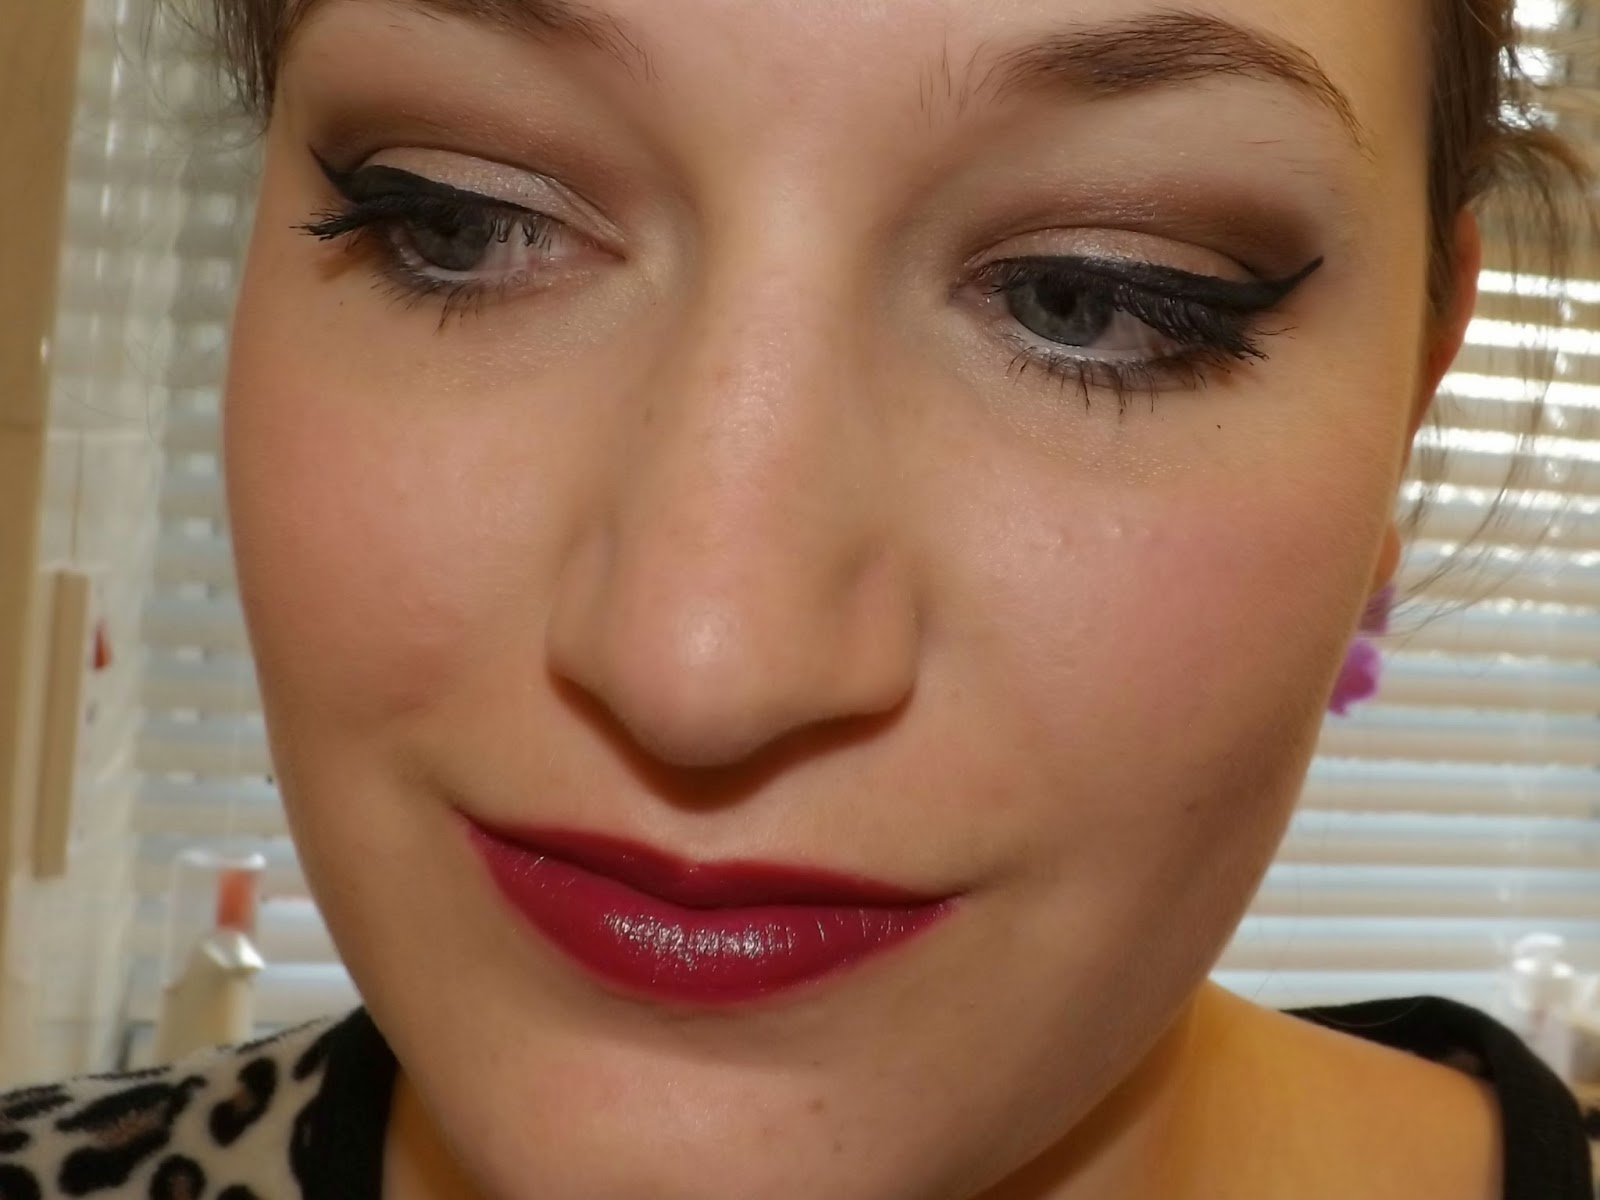 Meghan trainor dear future husband inspired makeup tutorial publicscrutiny Choice Image